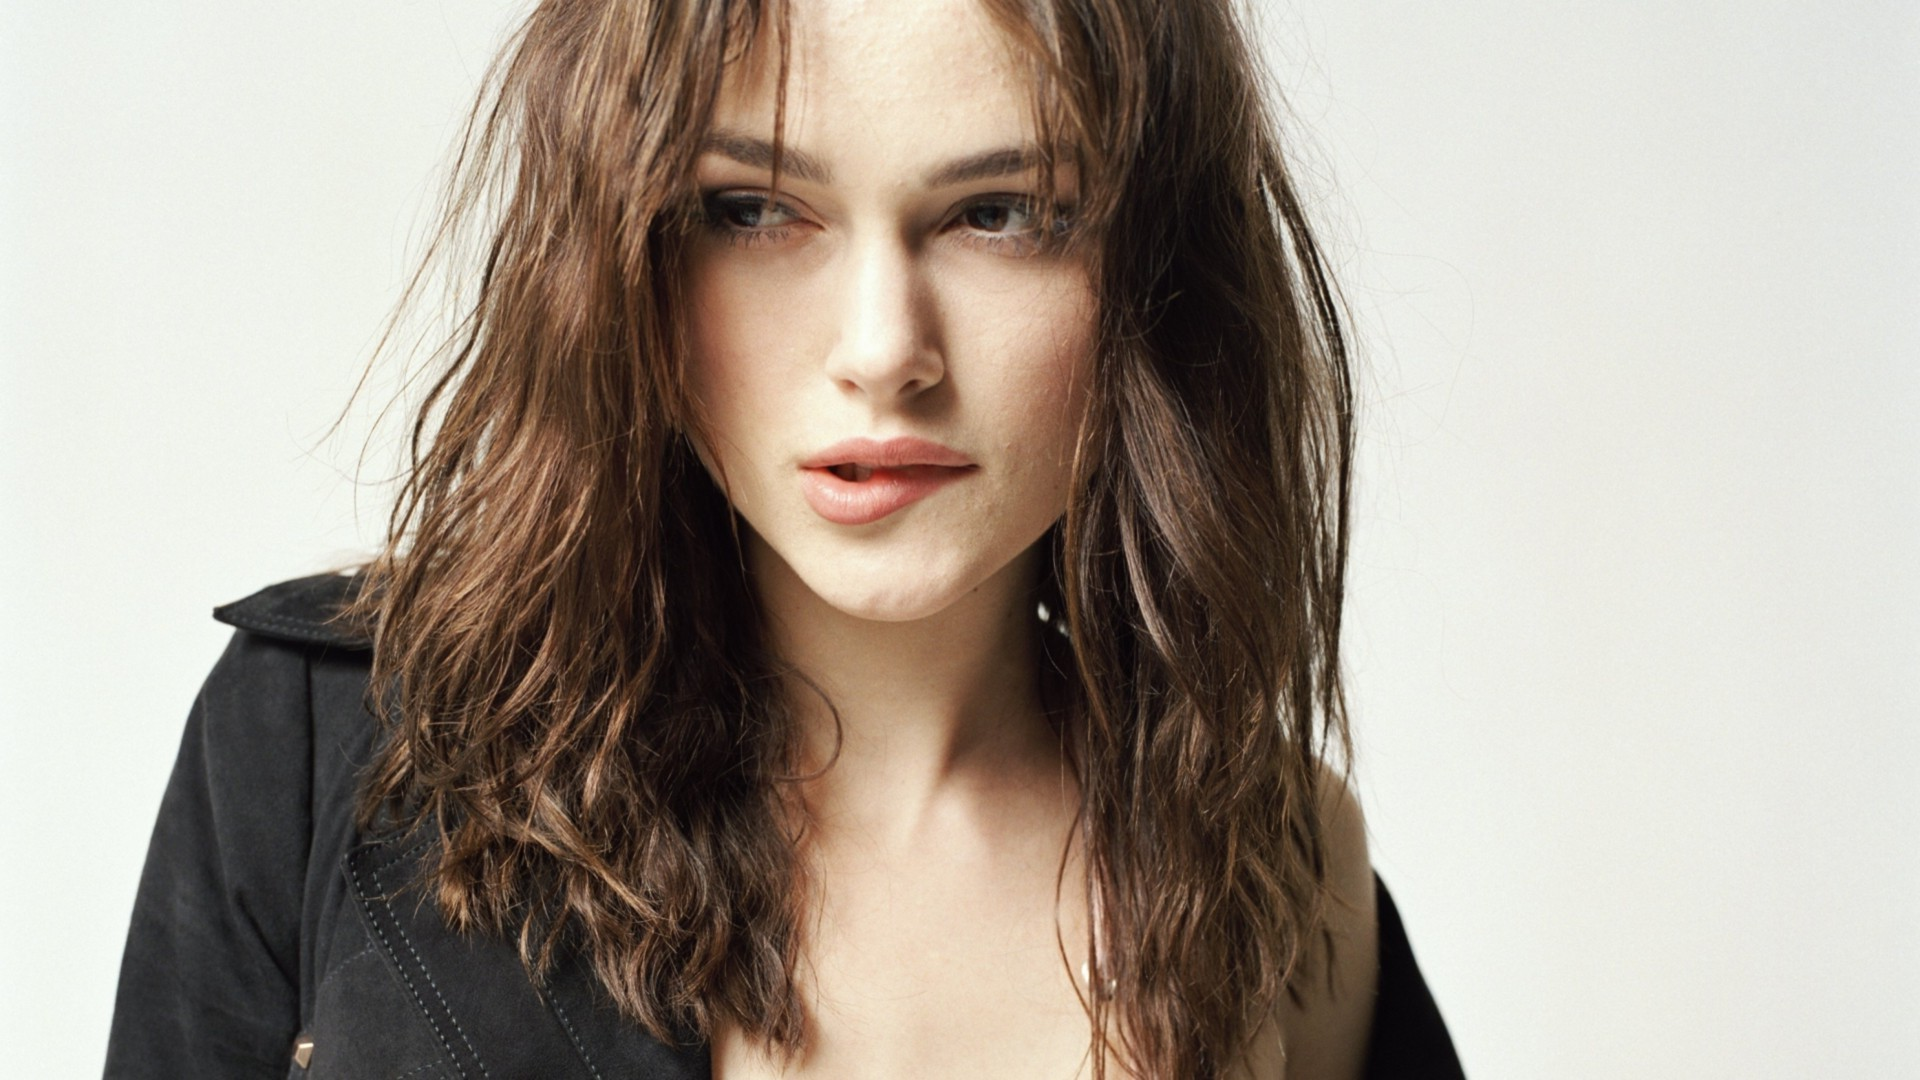 Keira knightley wallpapers high resolution and quality - High resolution wallpaper celebrity ...